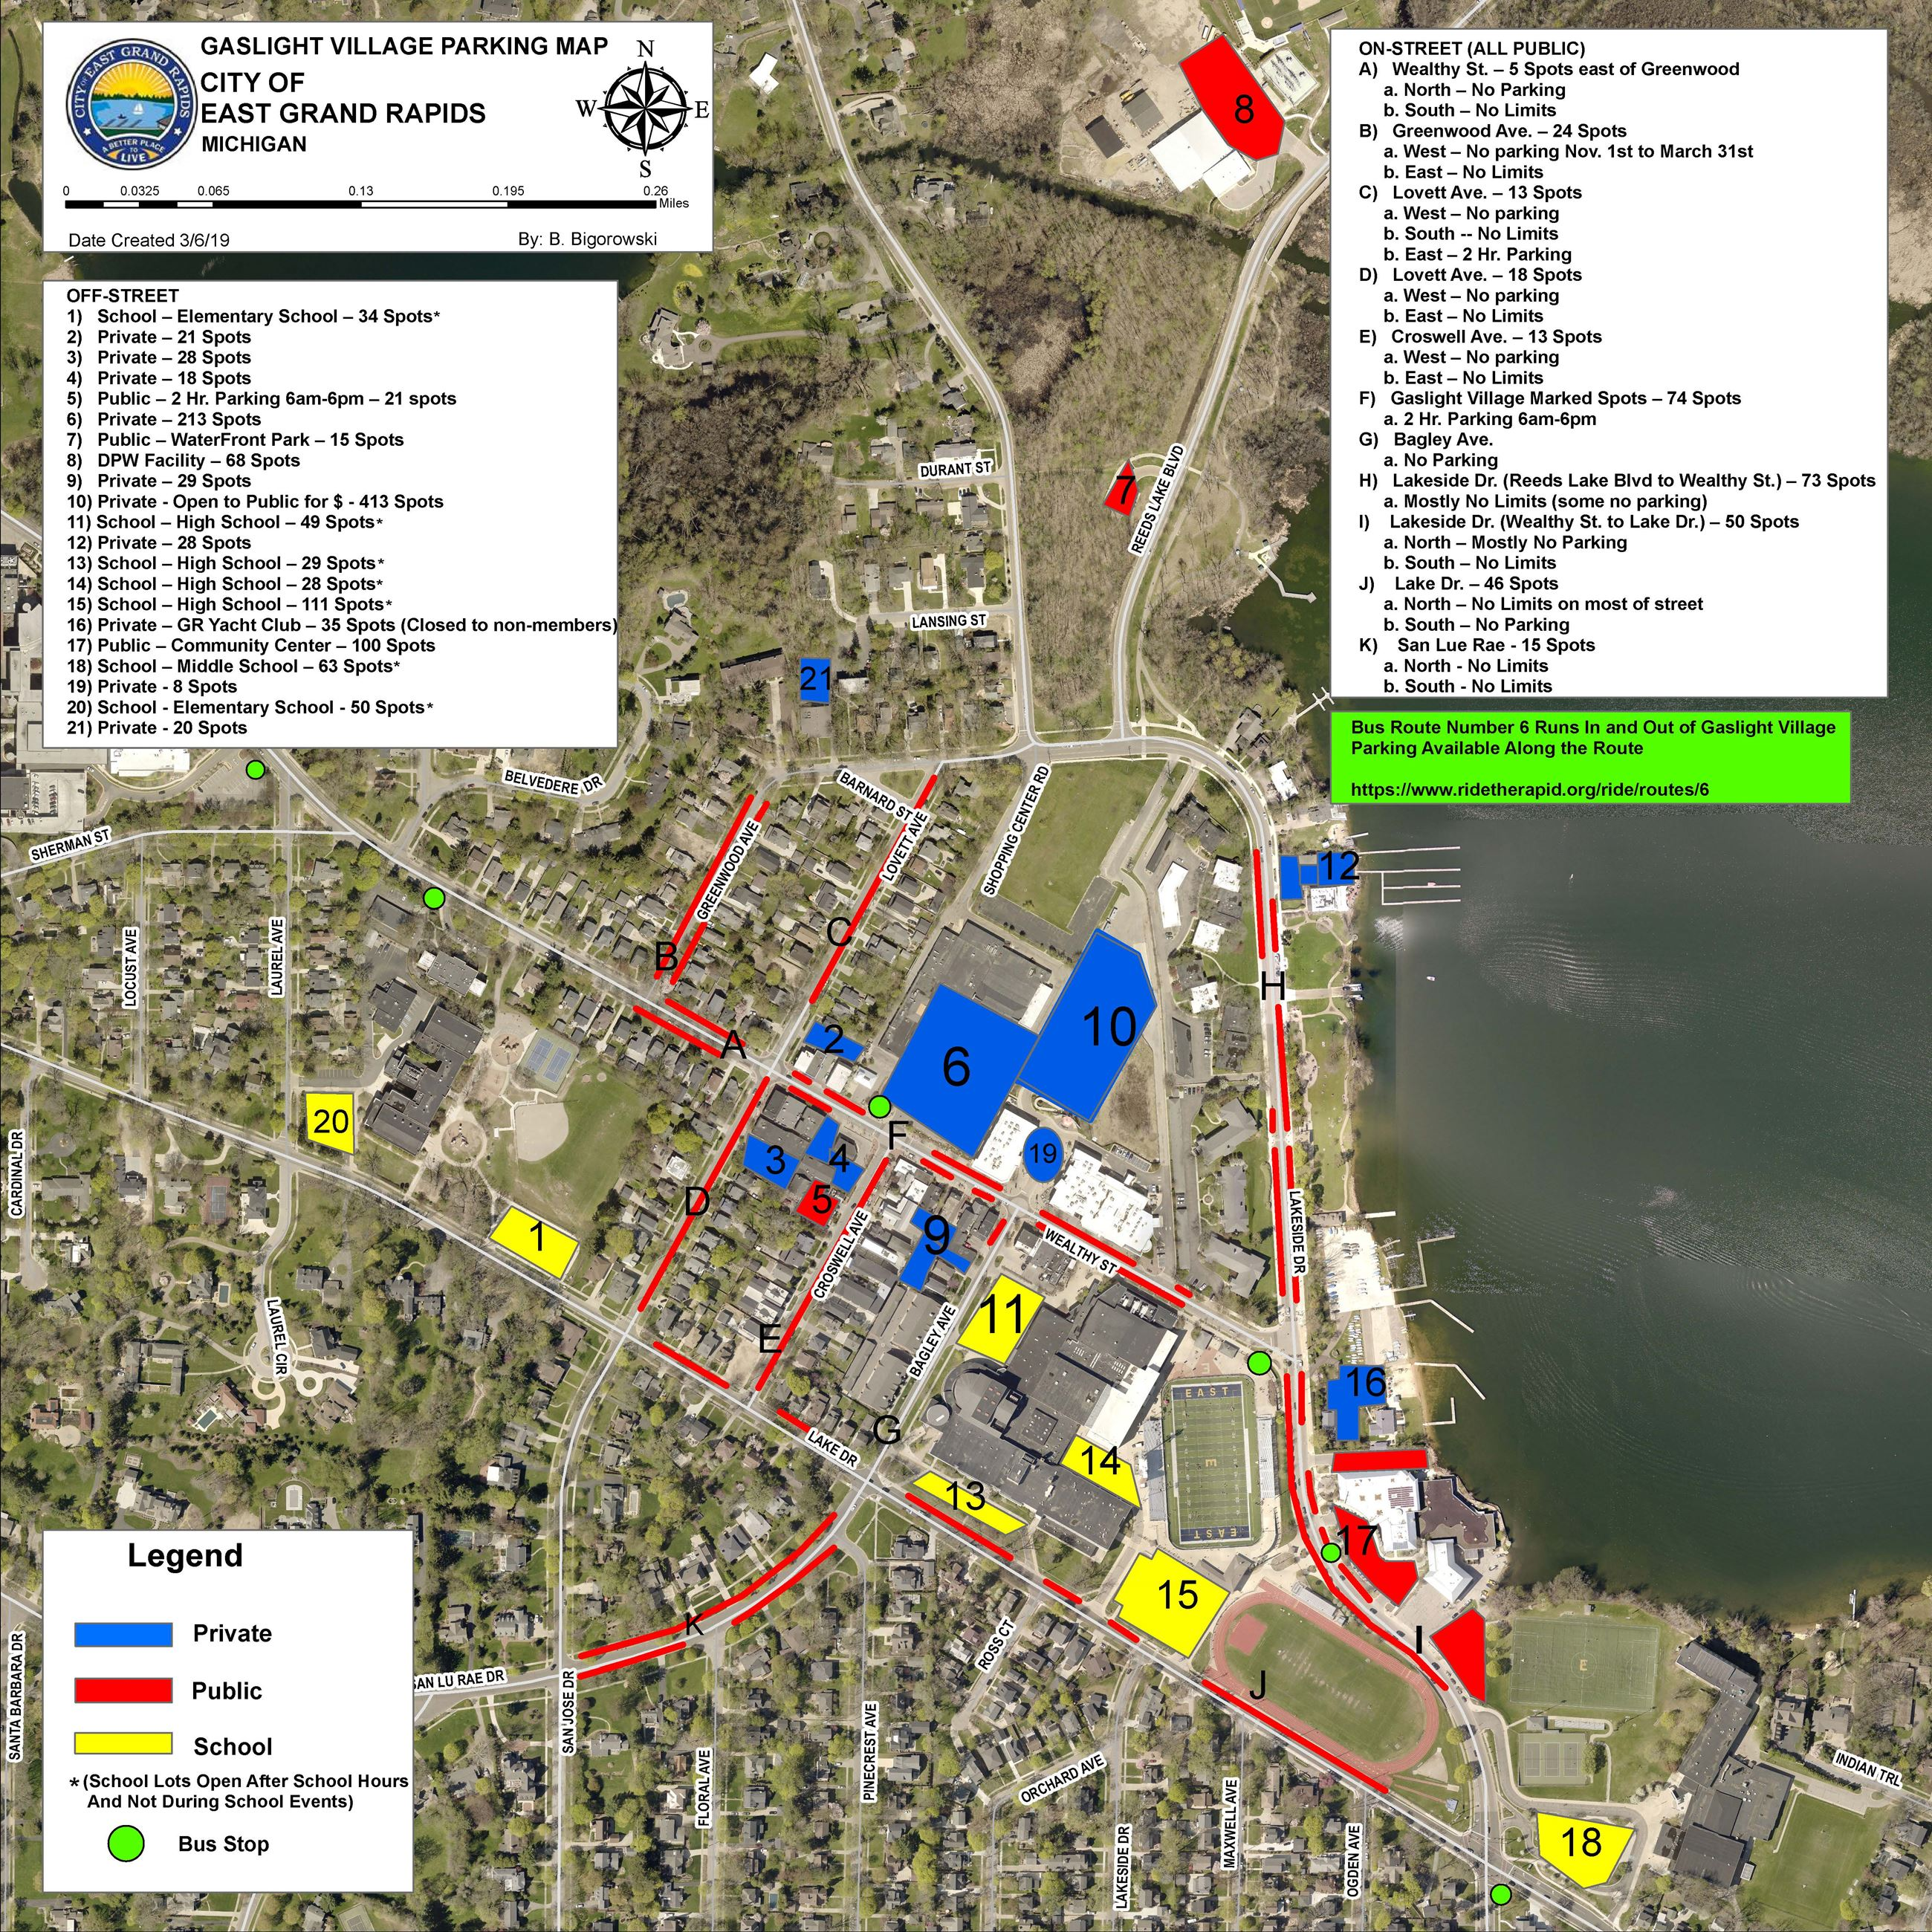 Gaslight Village Parking Map